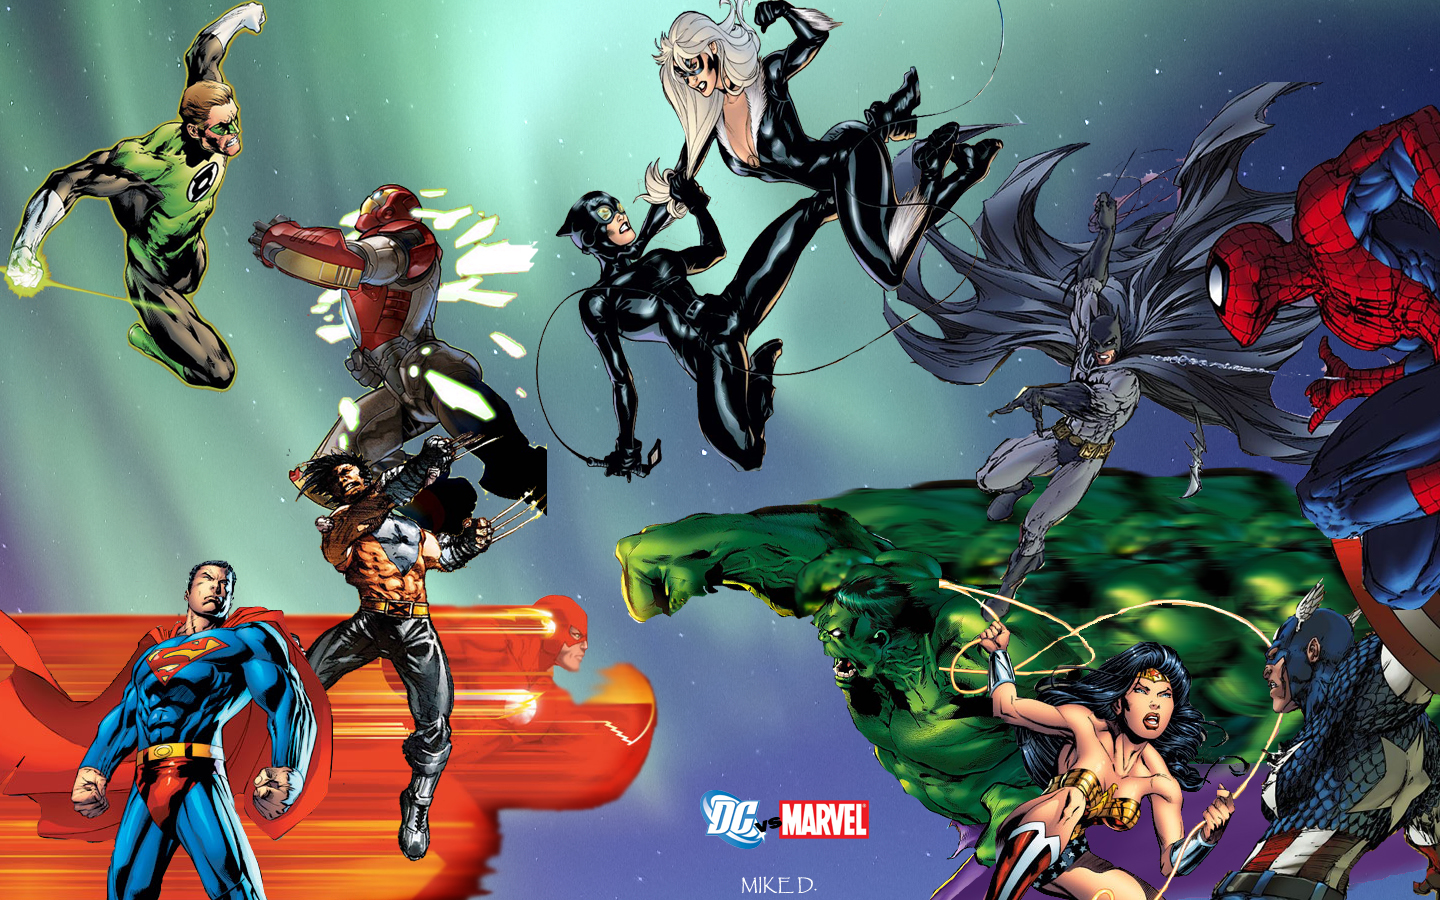 Dc vs marvel wallpaper and background image 1440x900 id 434702 wallpaper abyss - Marvel and dc wallpapers ...